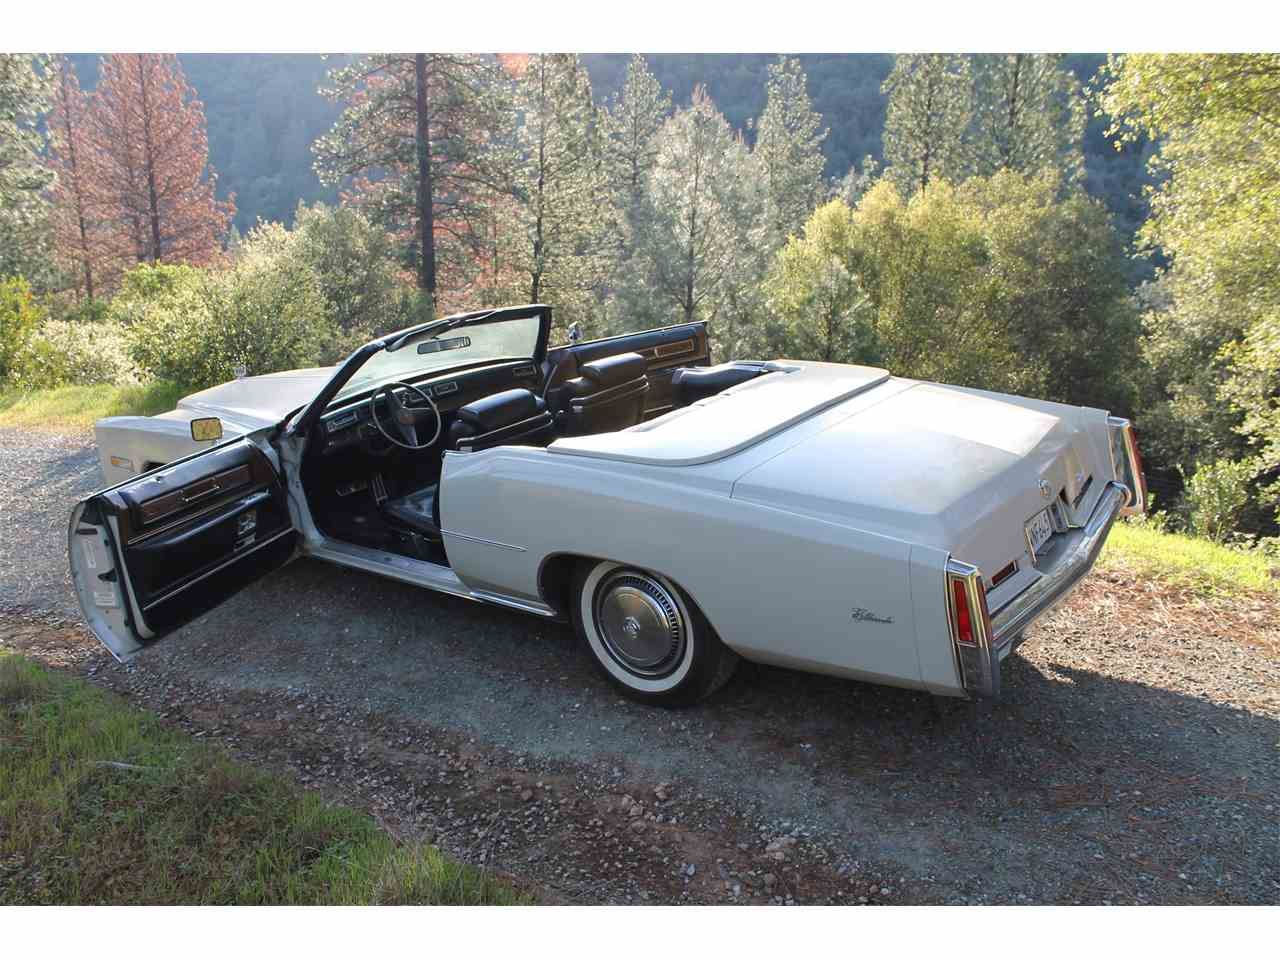 Large Picture of 1975 Cadillac Eldorado located in Sutter Creek California Offered by a Private Seller - I5ZP